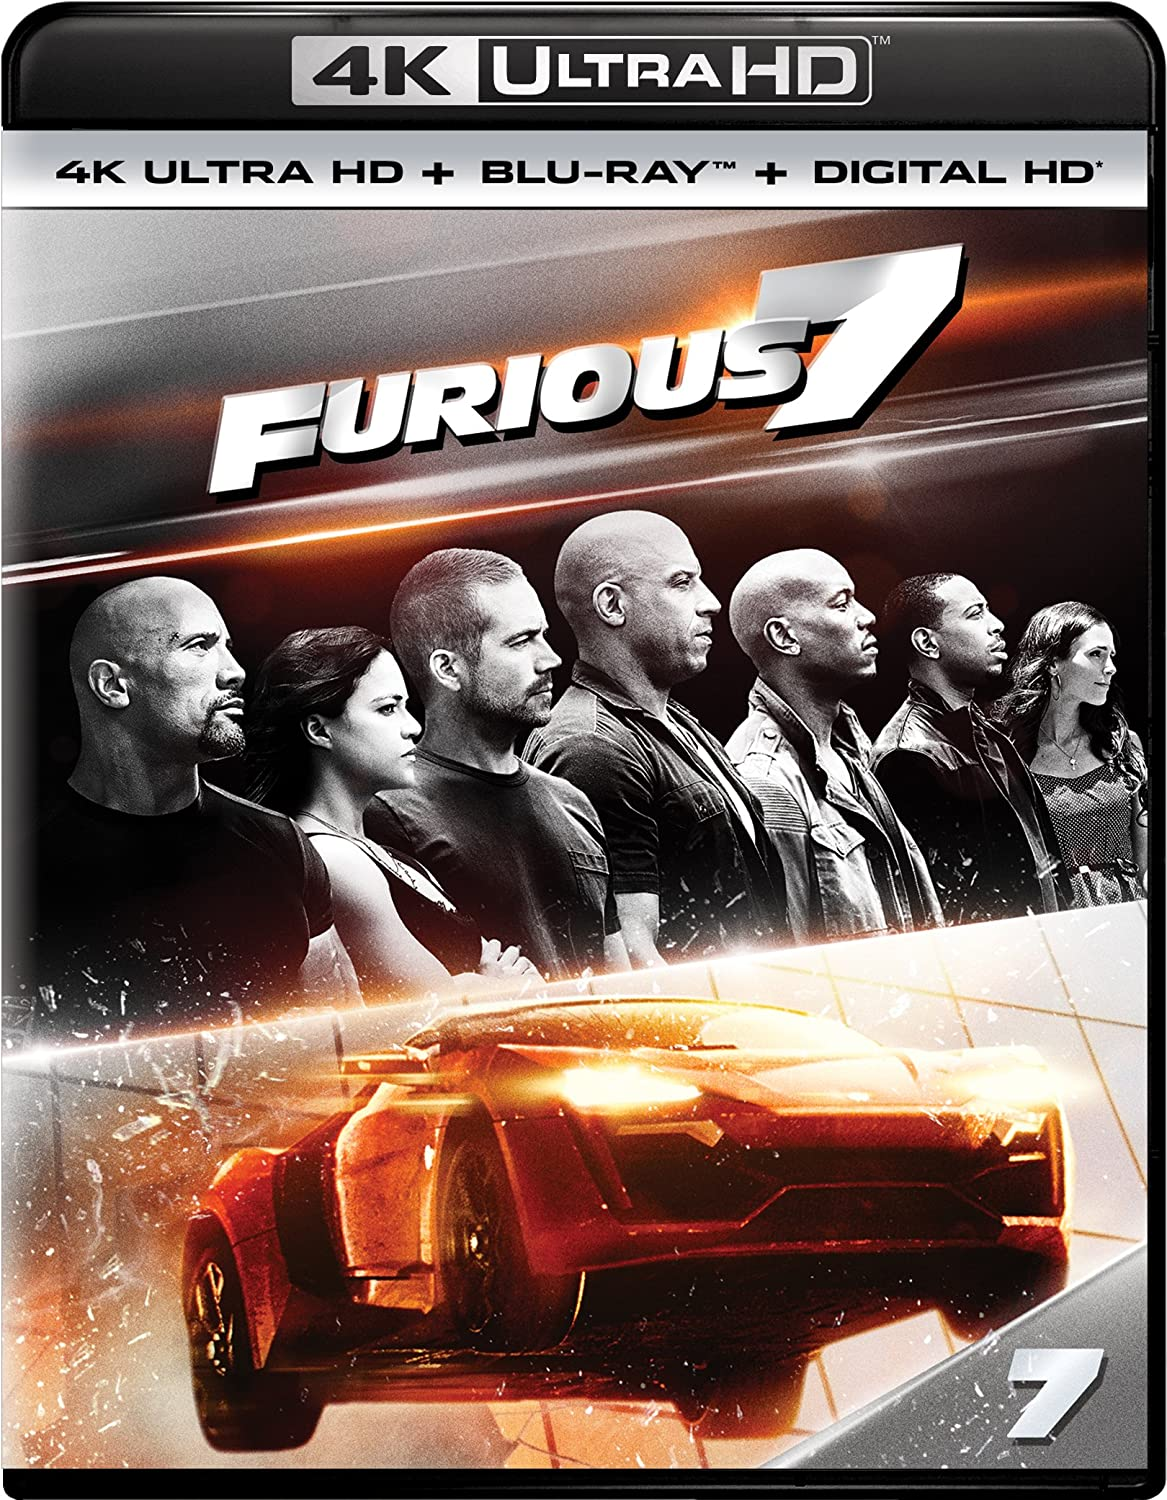 Courier shipping Max 55% OFF free Furious 7